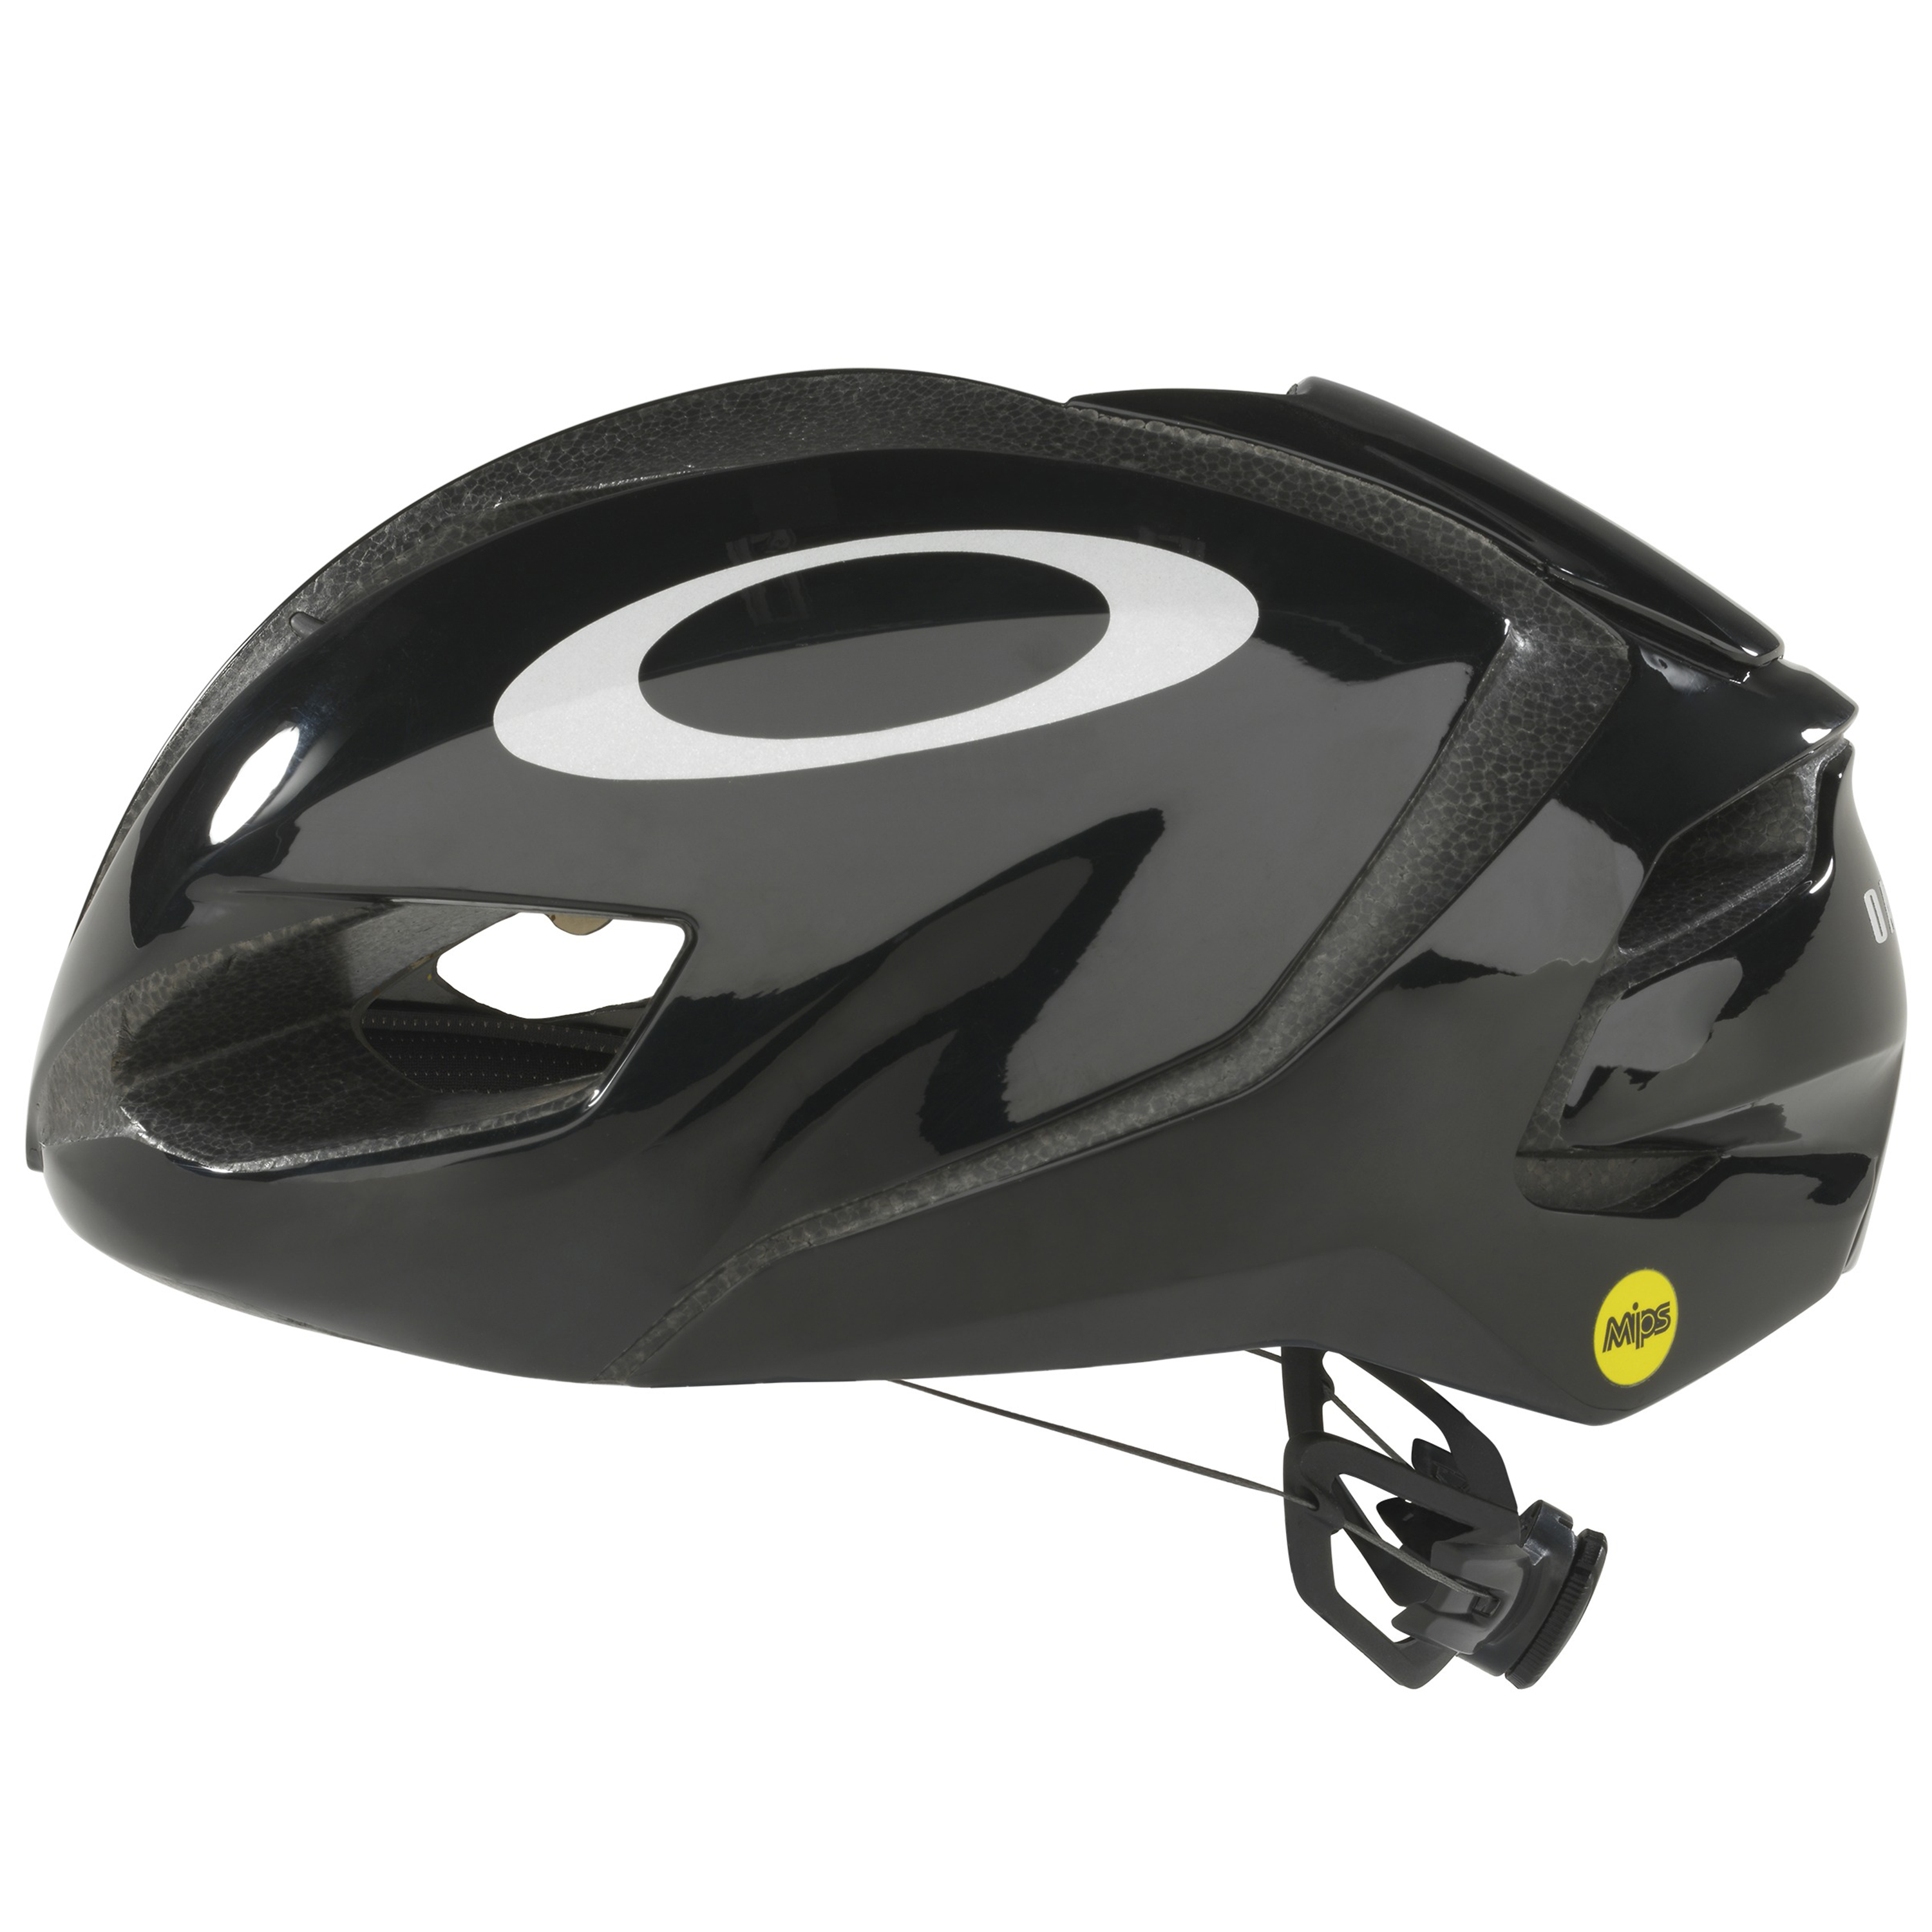 88b1294686e Oakley ARO5 Road Bike Helmet